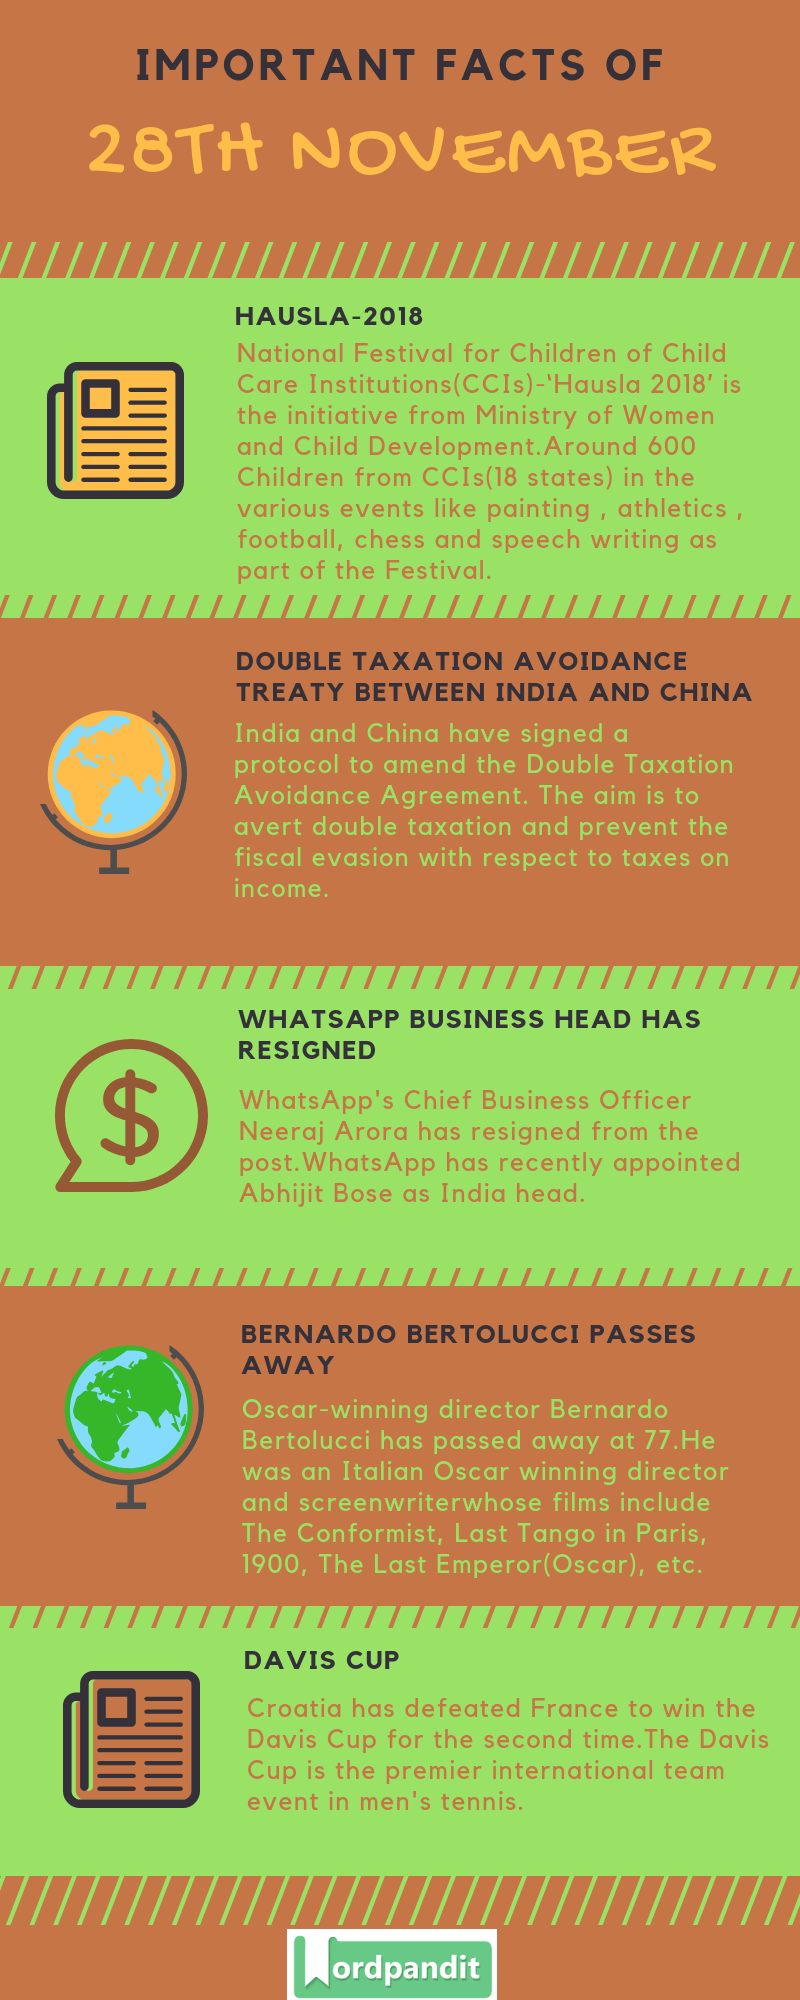 Daily Current Affairs 28 November 2018 Current Affairs Quiz 28 November 2018 Current Affairs Infographic